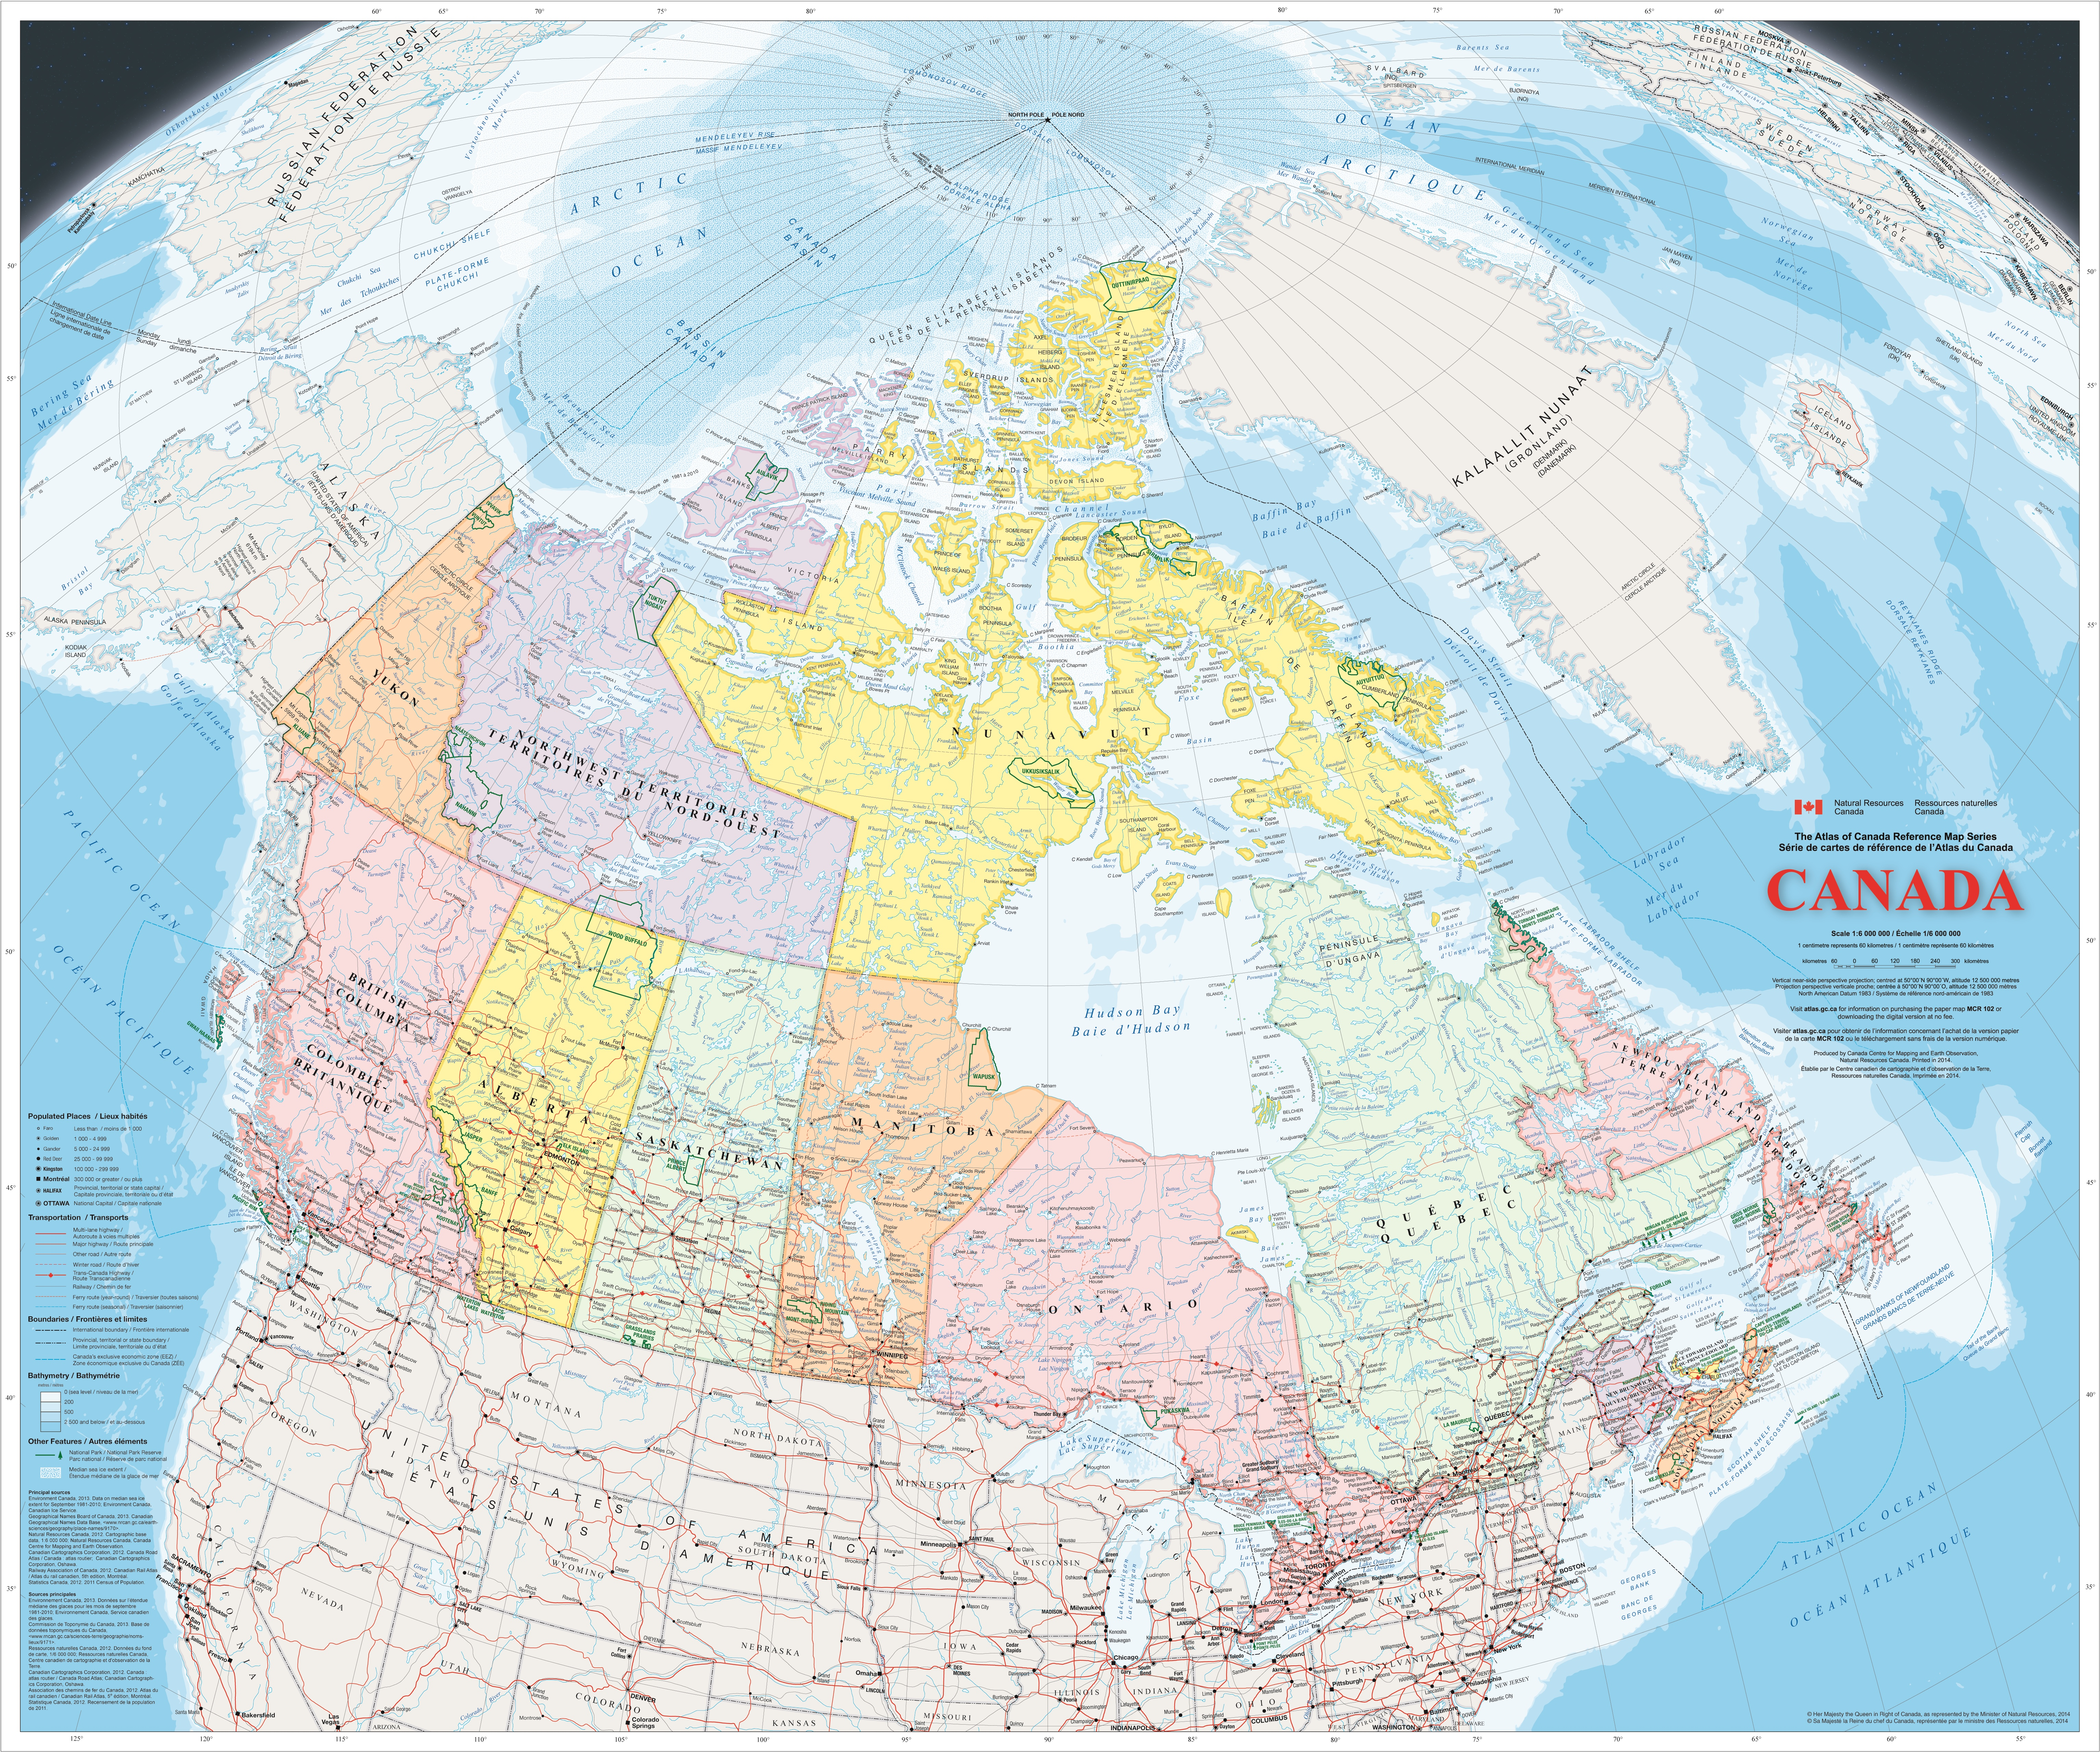 Map Of Canada With Cities And States.Large Detailed Map Of Canada With Cities And Towns